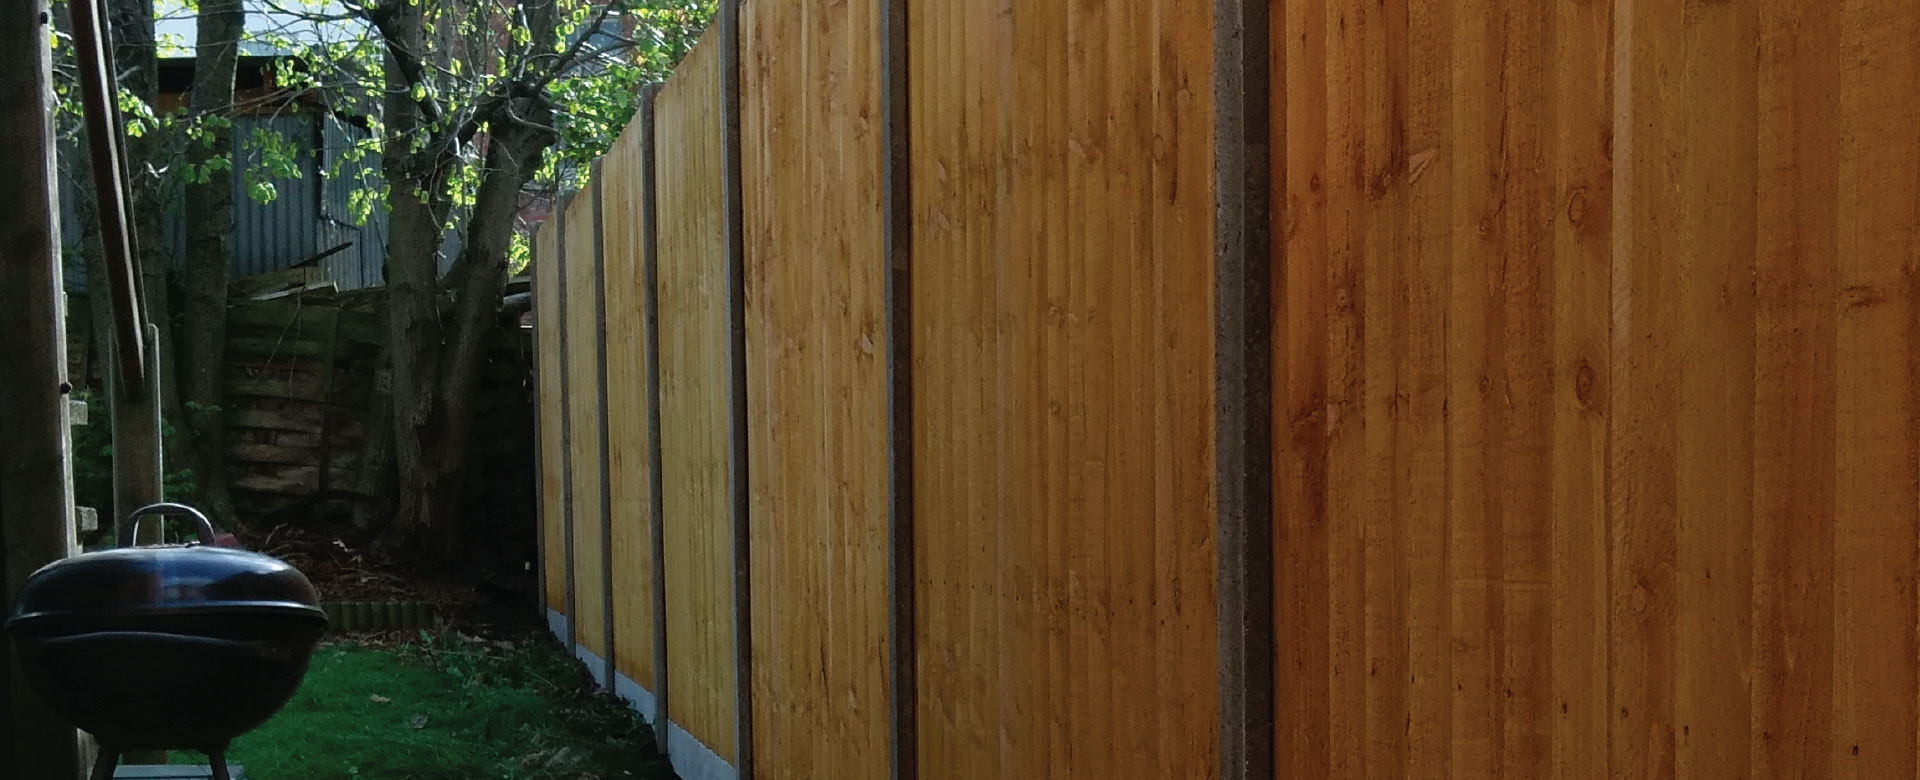 fencing-nw10-img